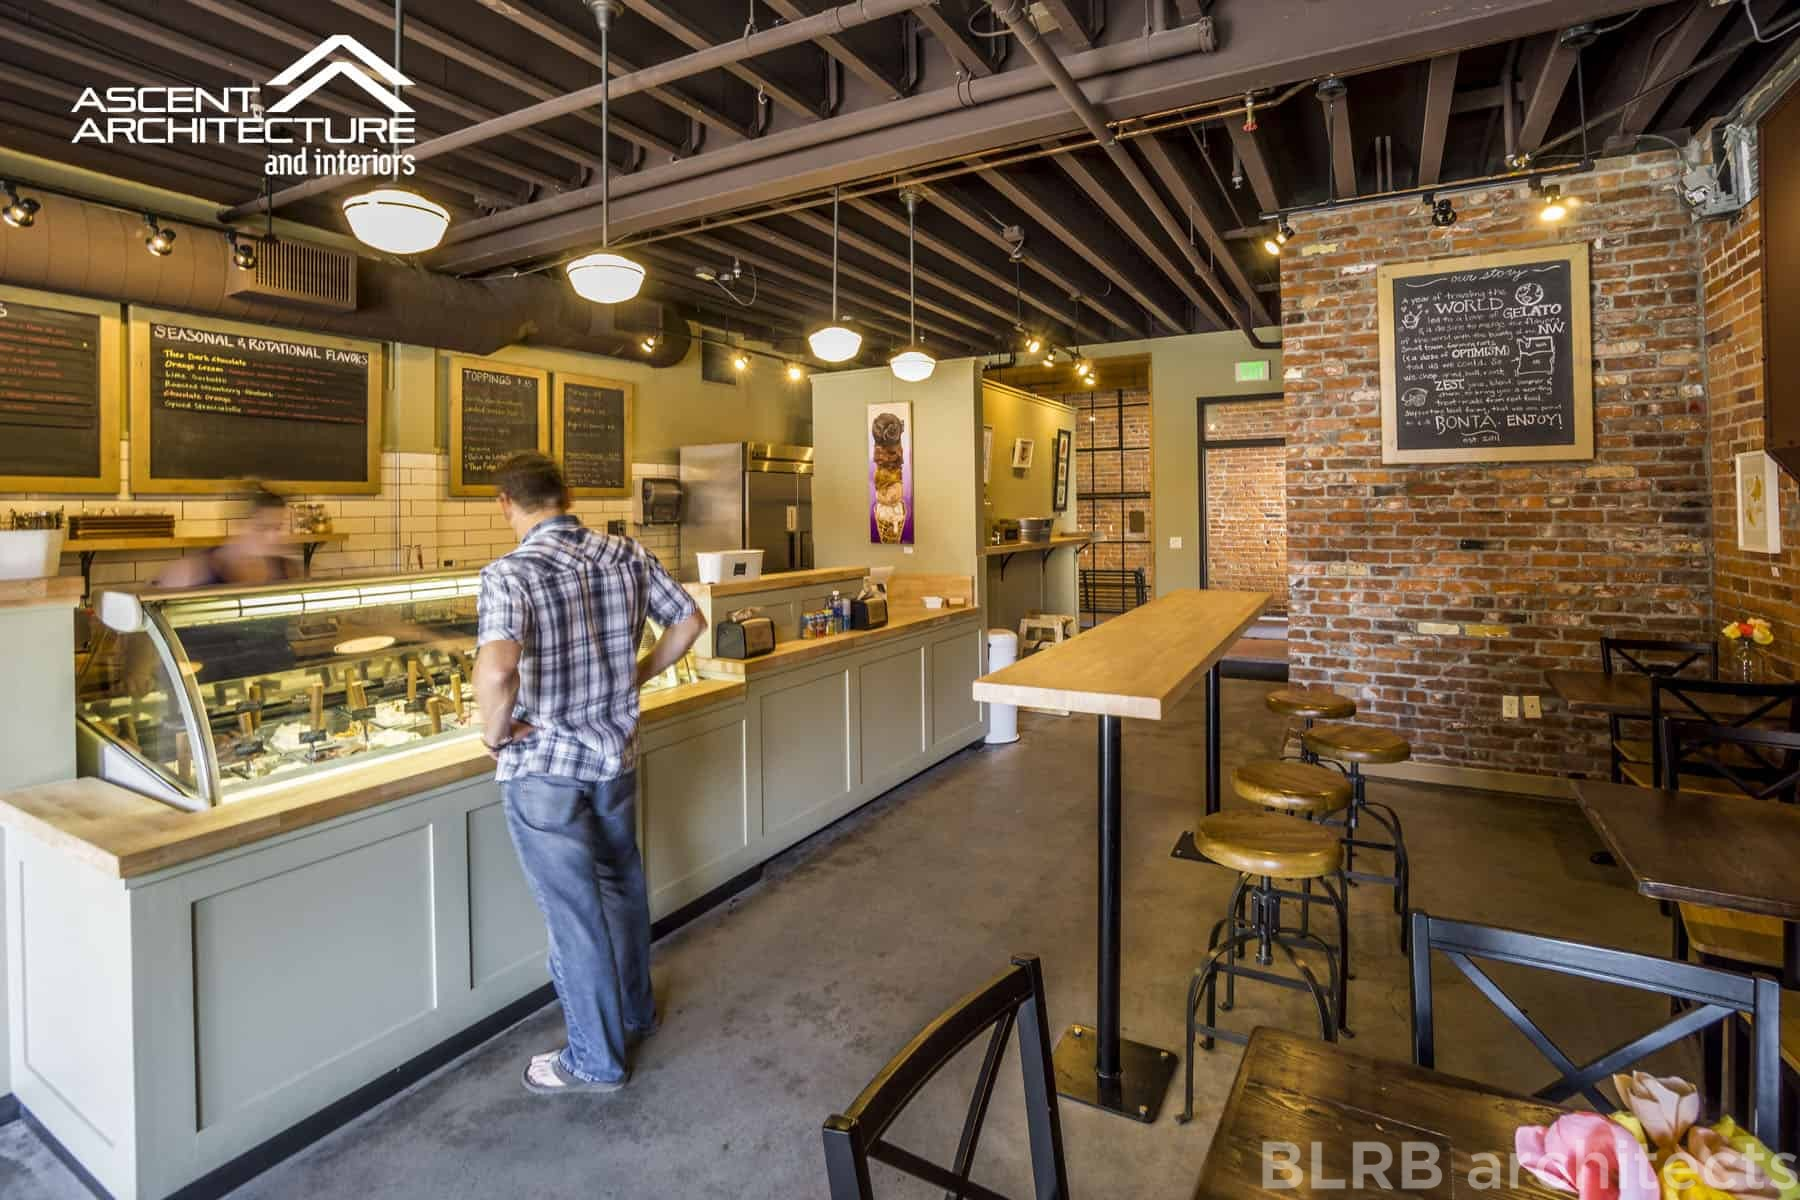 Bonta Gelato Scoop Shop Blrb Architects Formerly Ascent Architecture Interiors